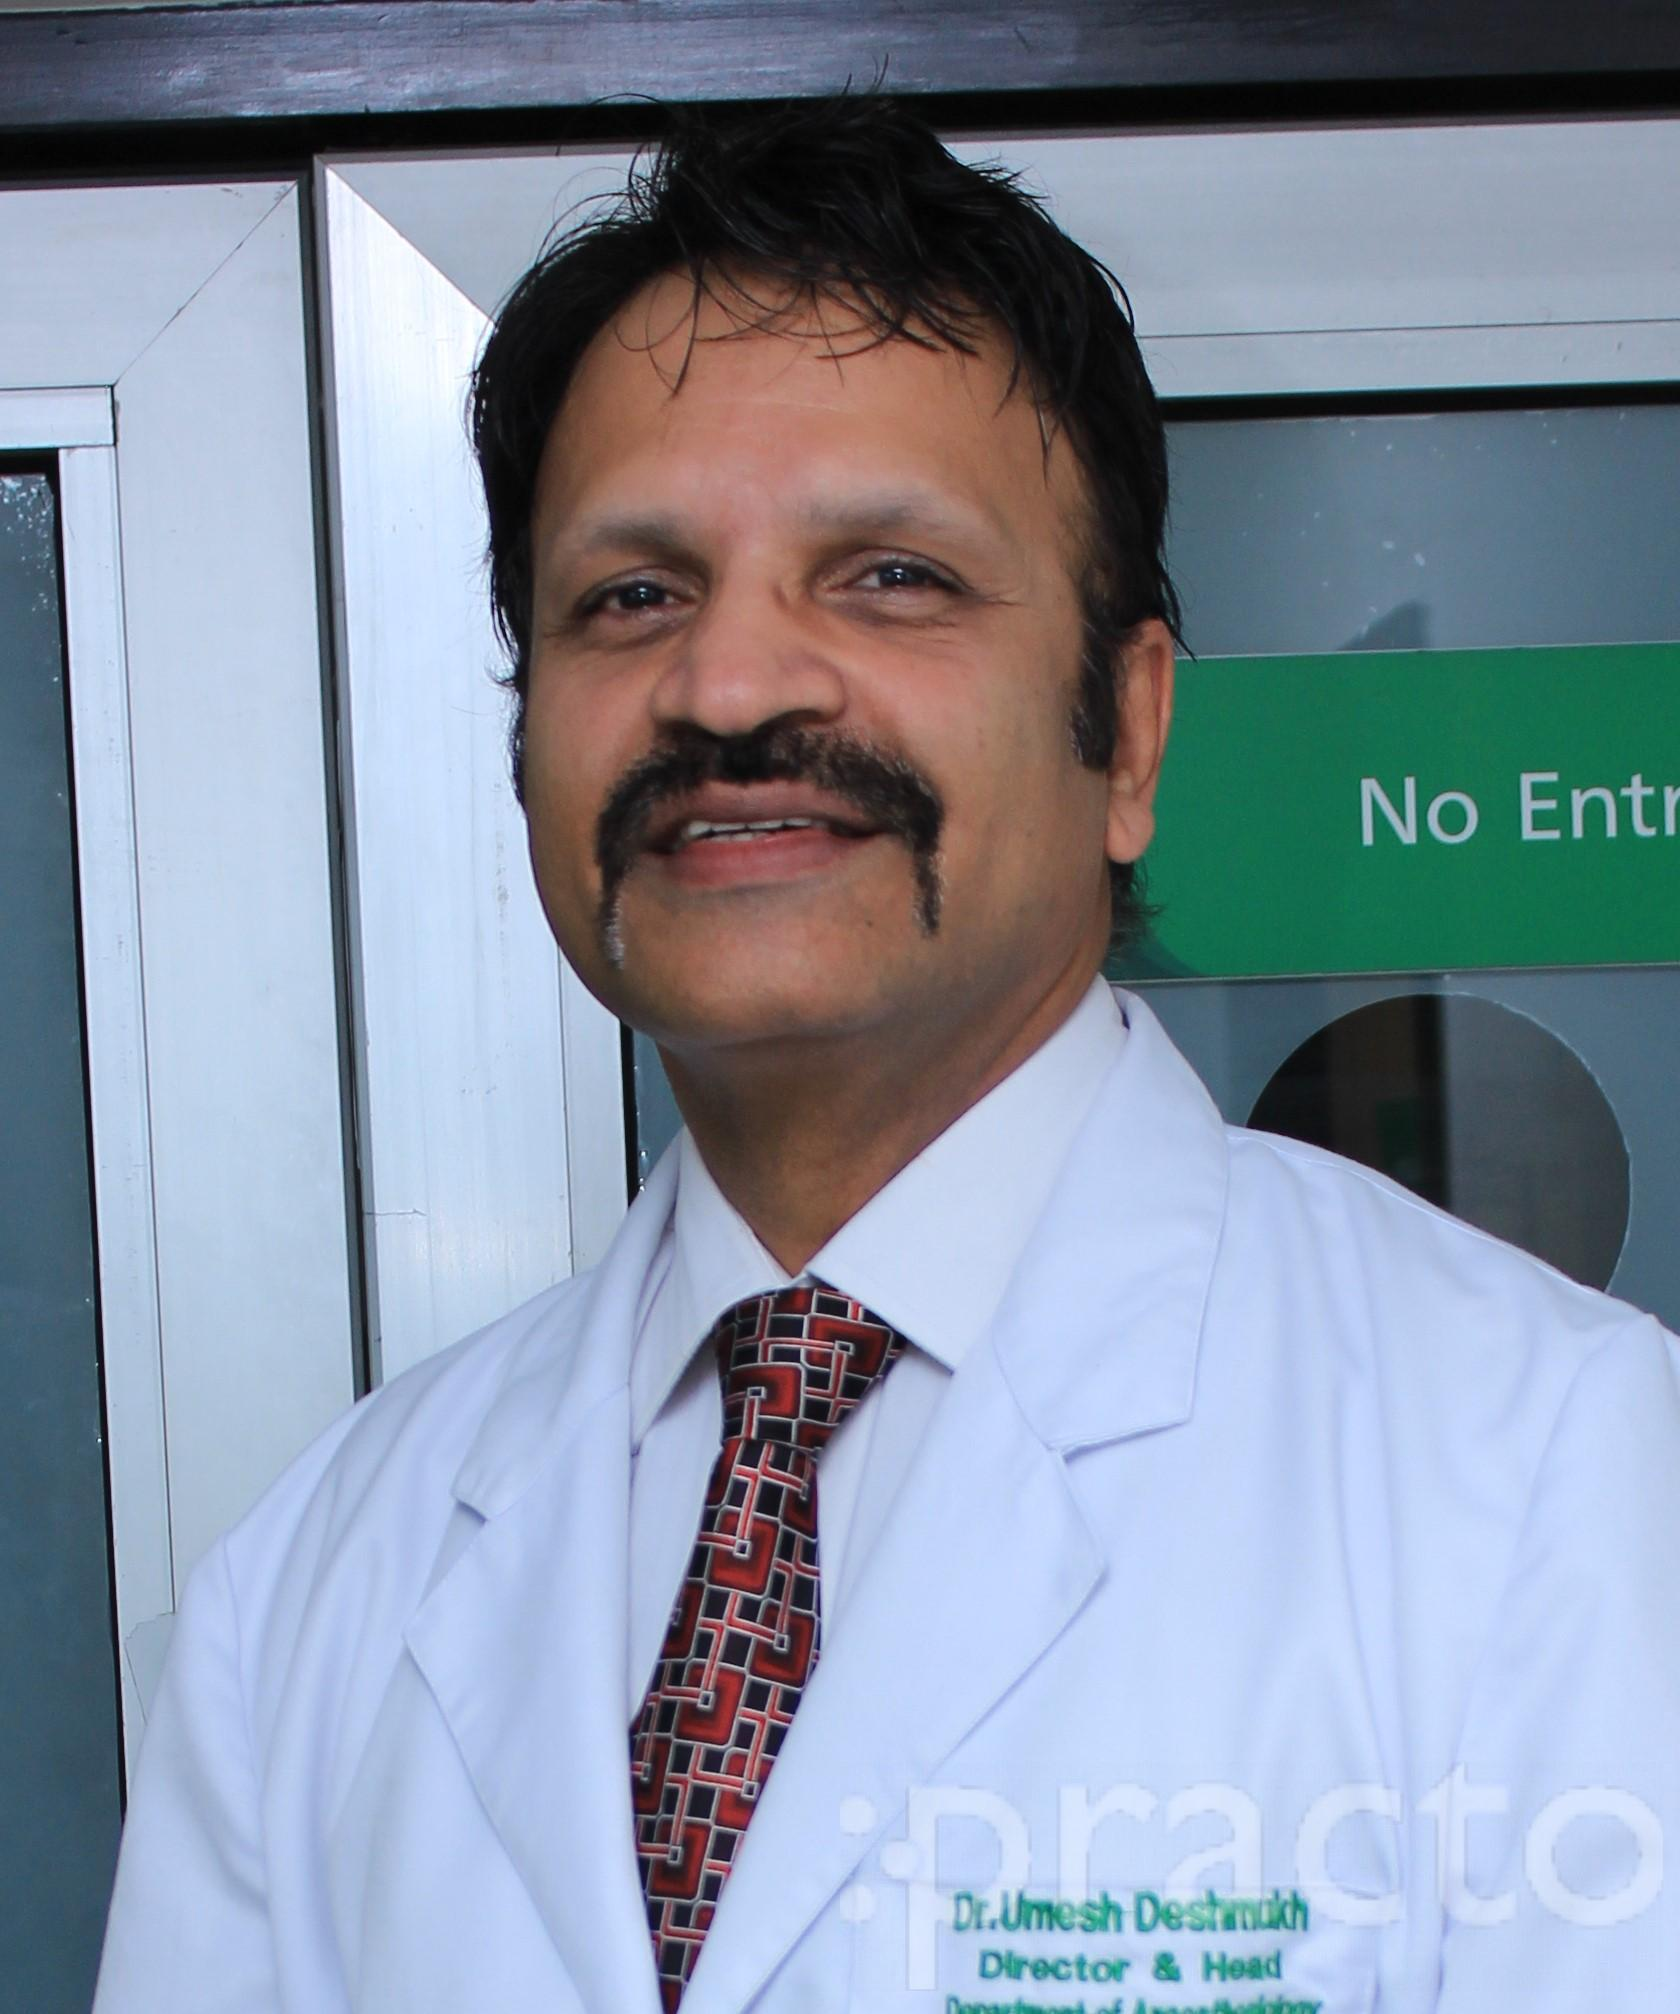 Umesh Deshmukh - Pain Management Specialist